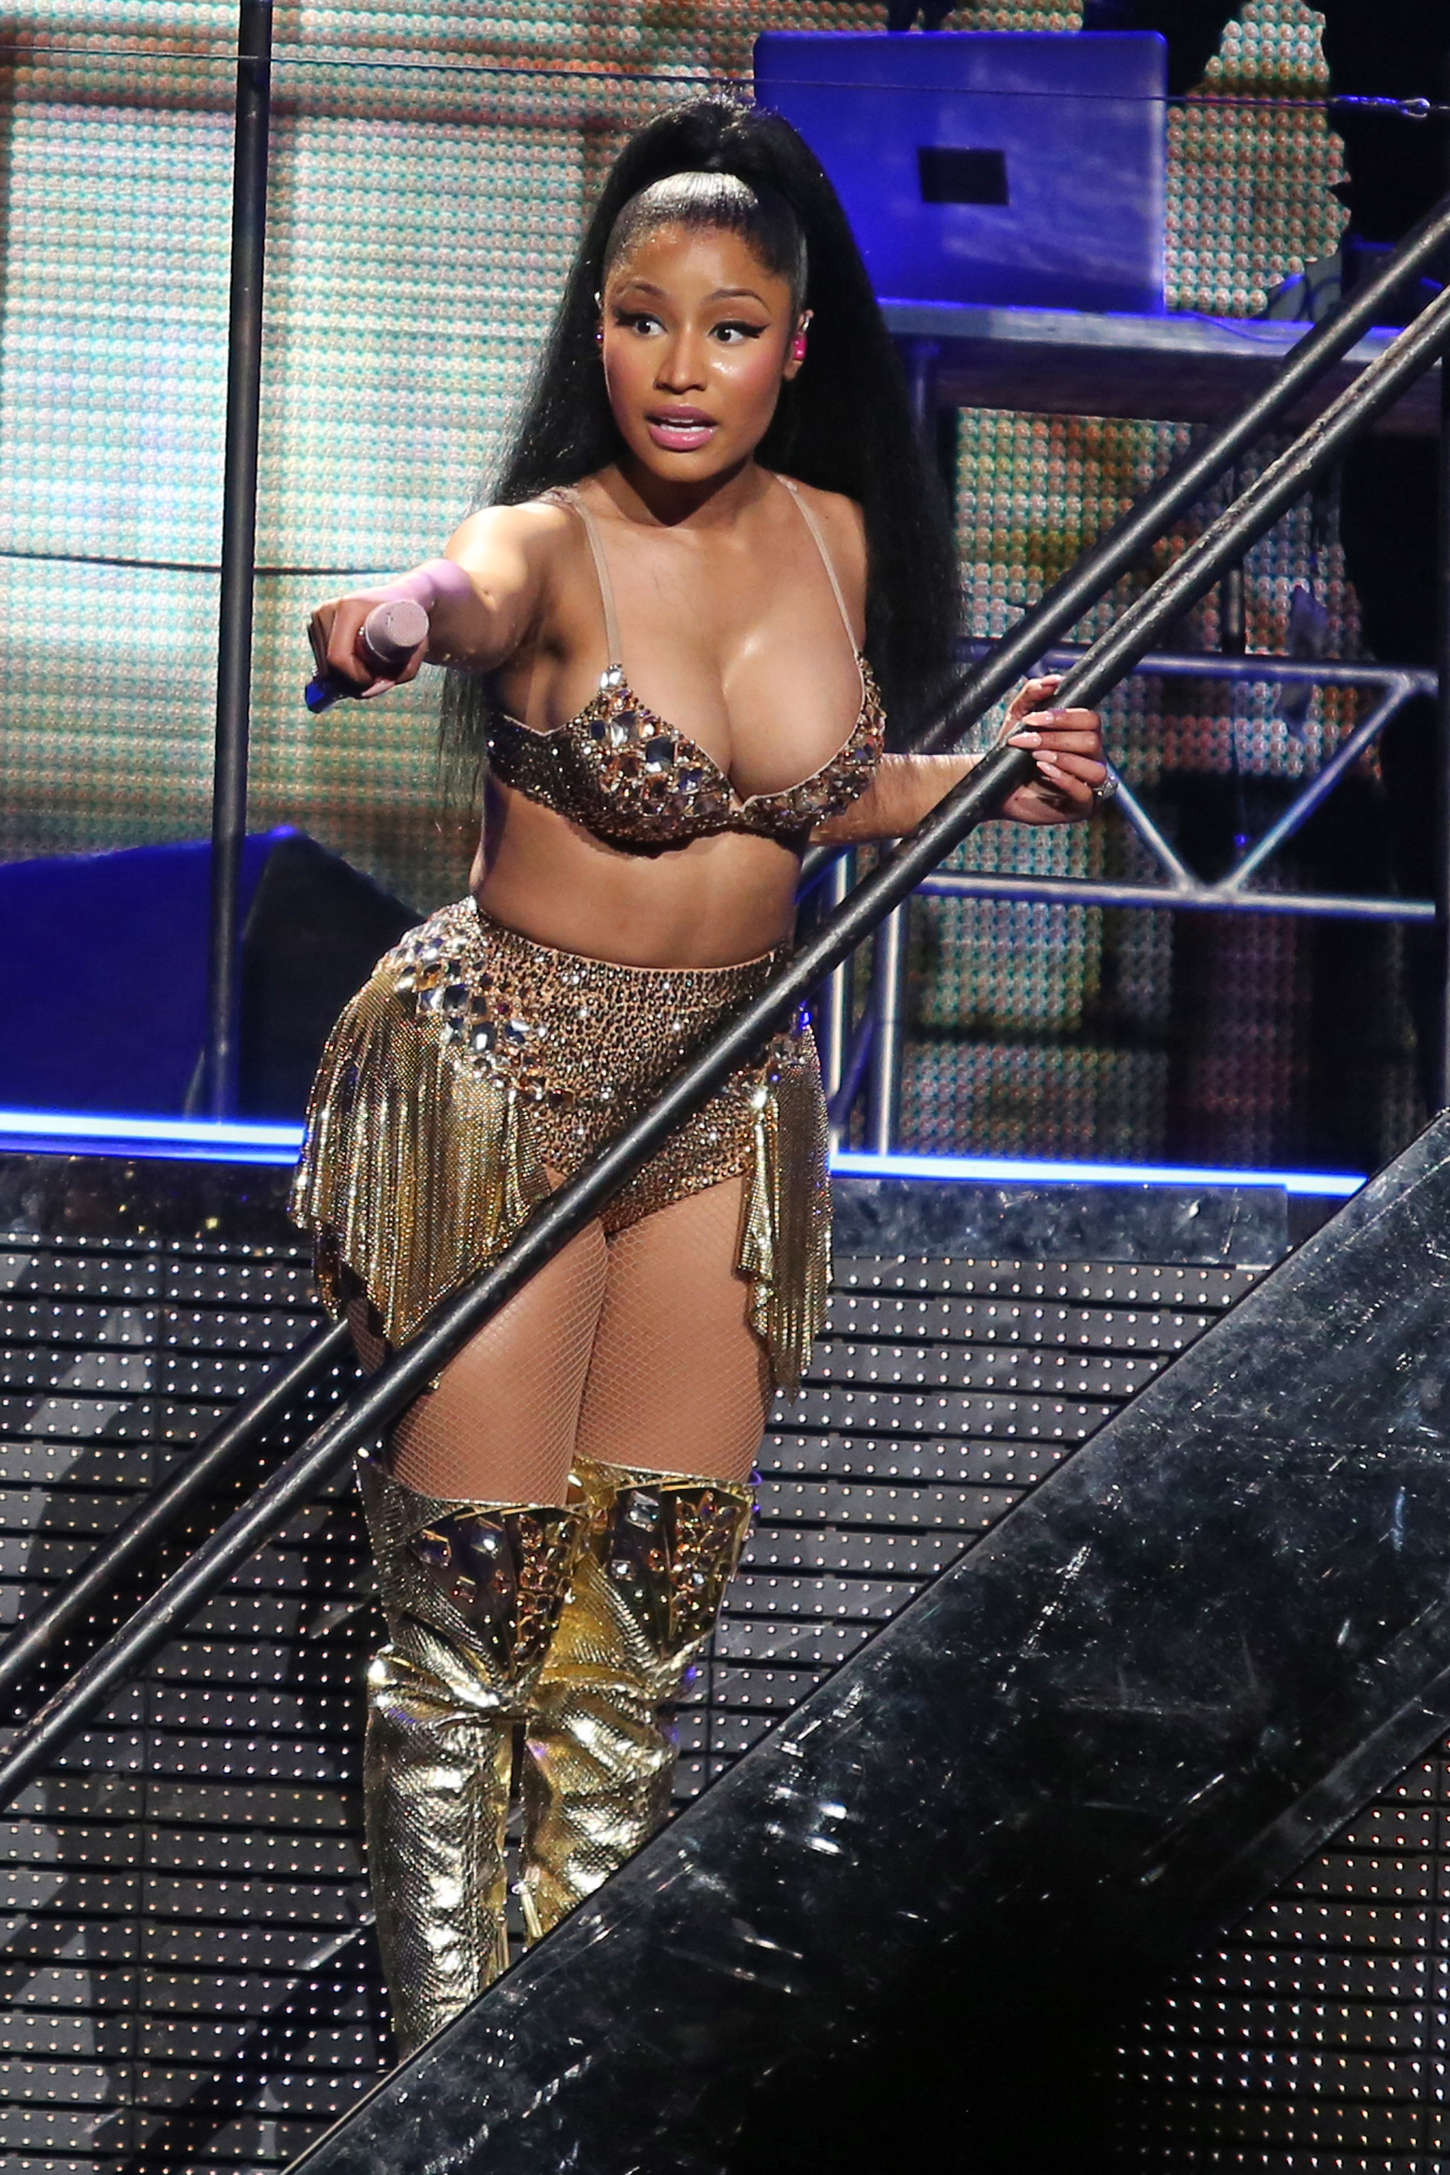 Nicki-Minaj-Cleavage-11